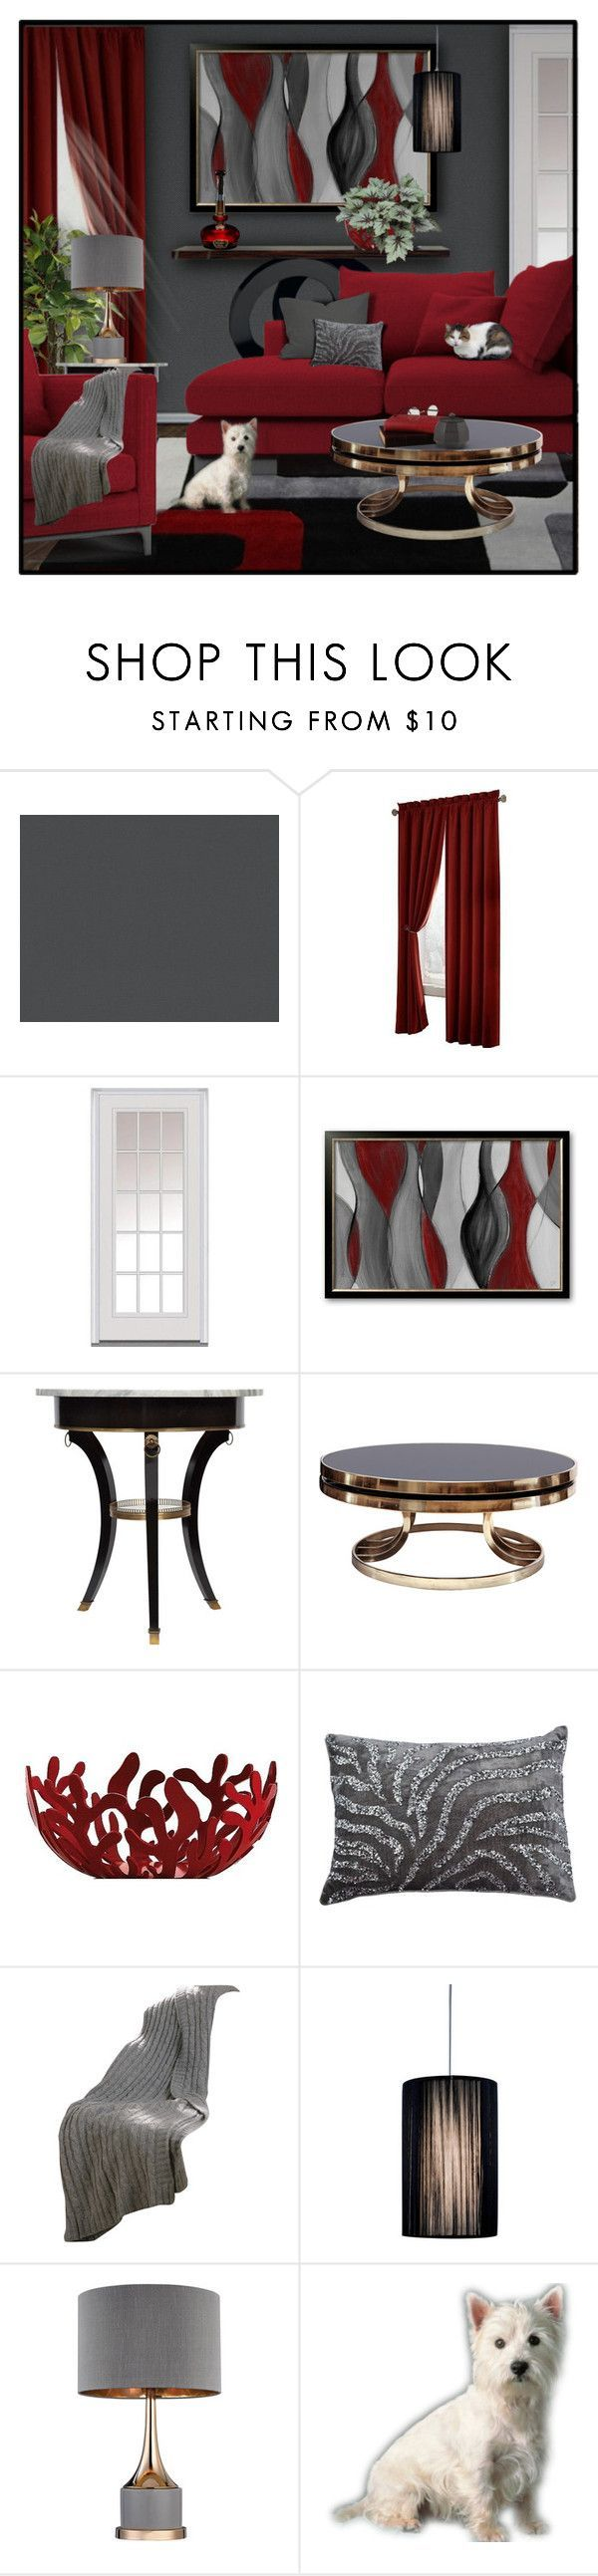 """""""2/5 RED + GREY Living Room"""" by signaturenails-dstanley :heart: liked on Polyvore featuring interior, interiors, interior design, home, home decor, interior decorating, Maytex, Milliken, Alessi and living room"""